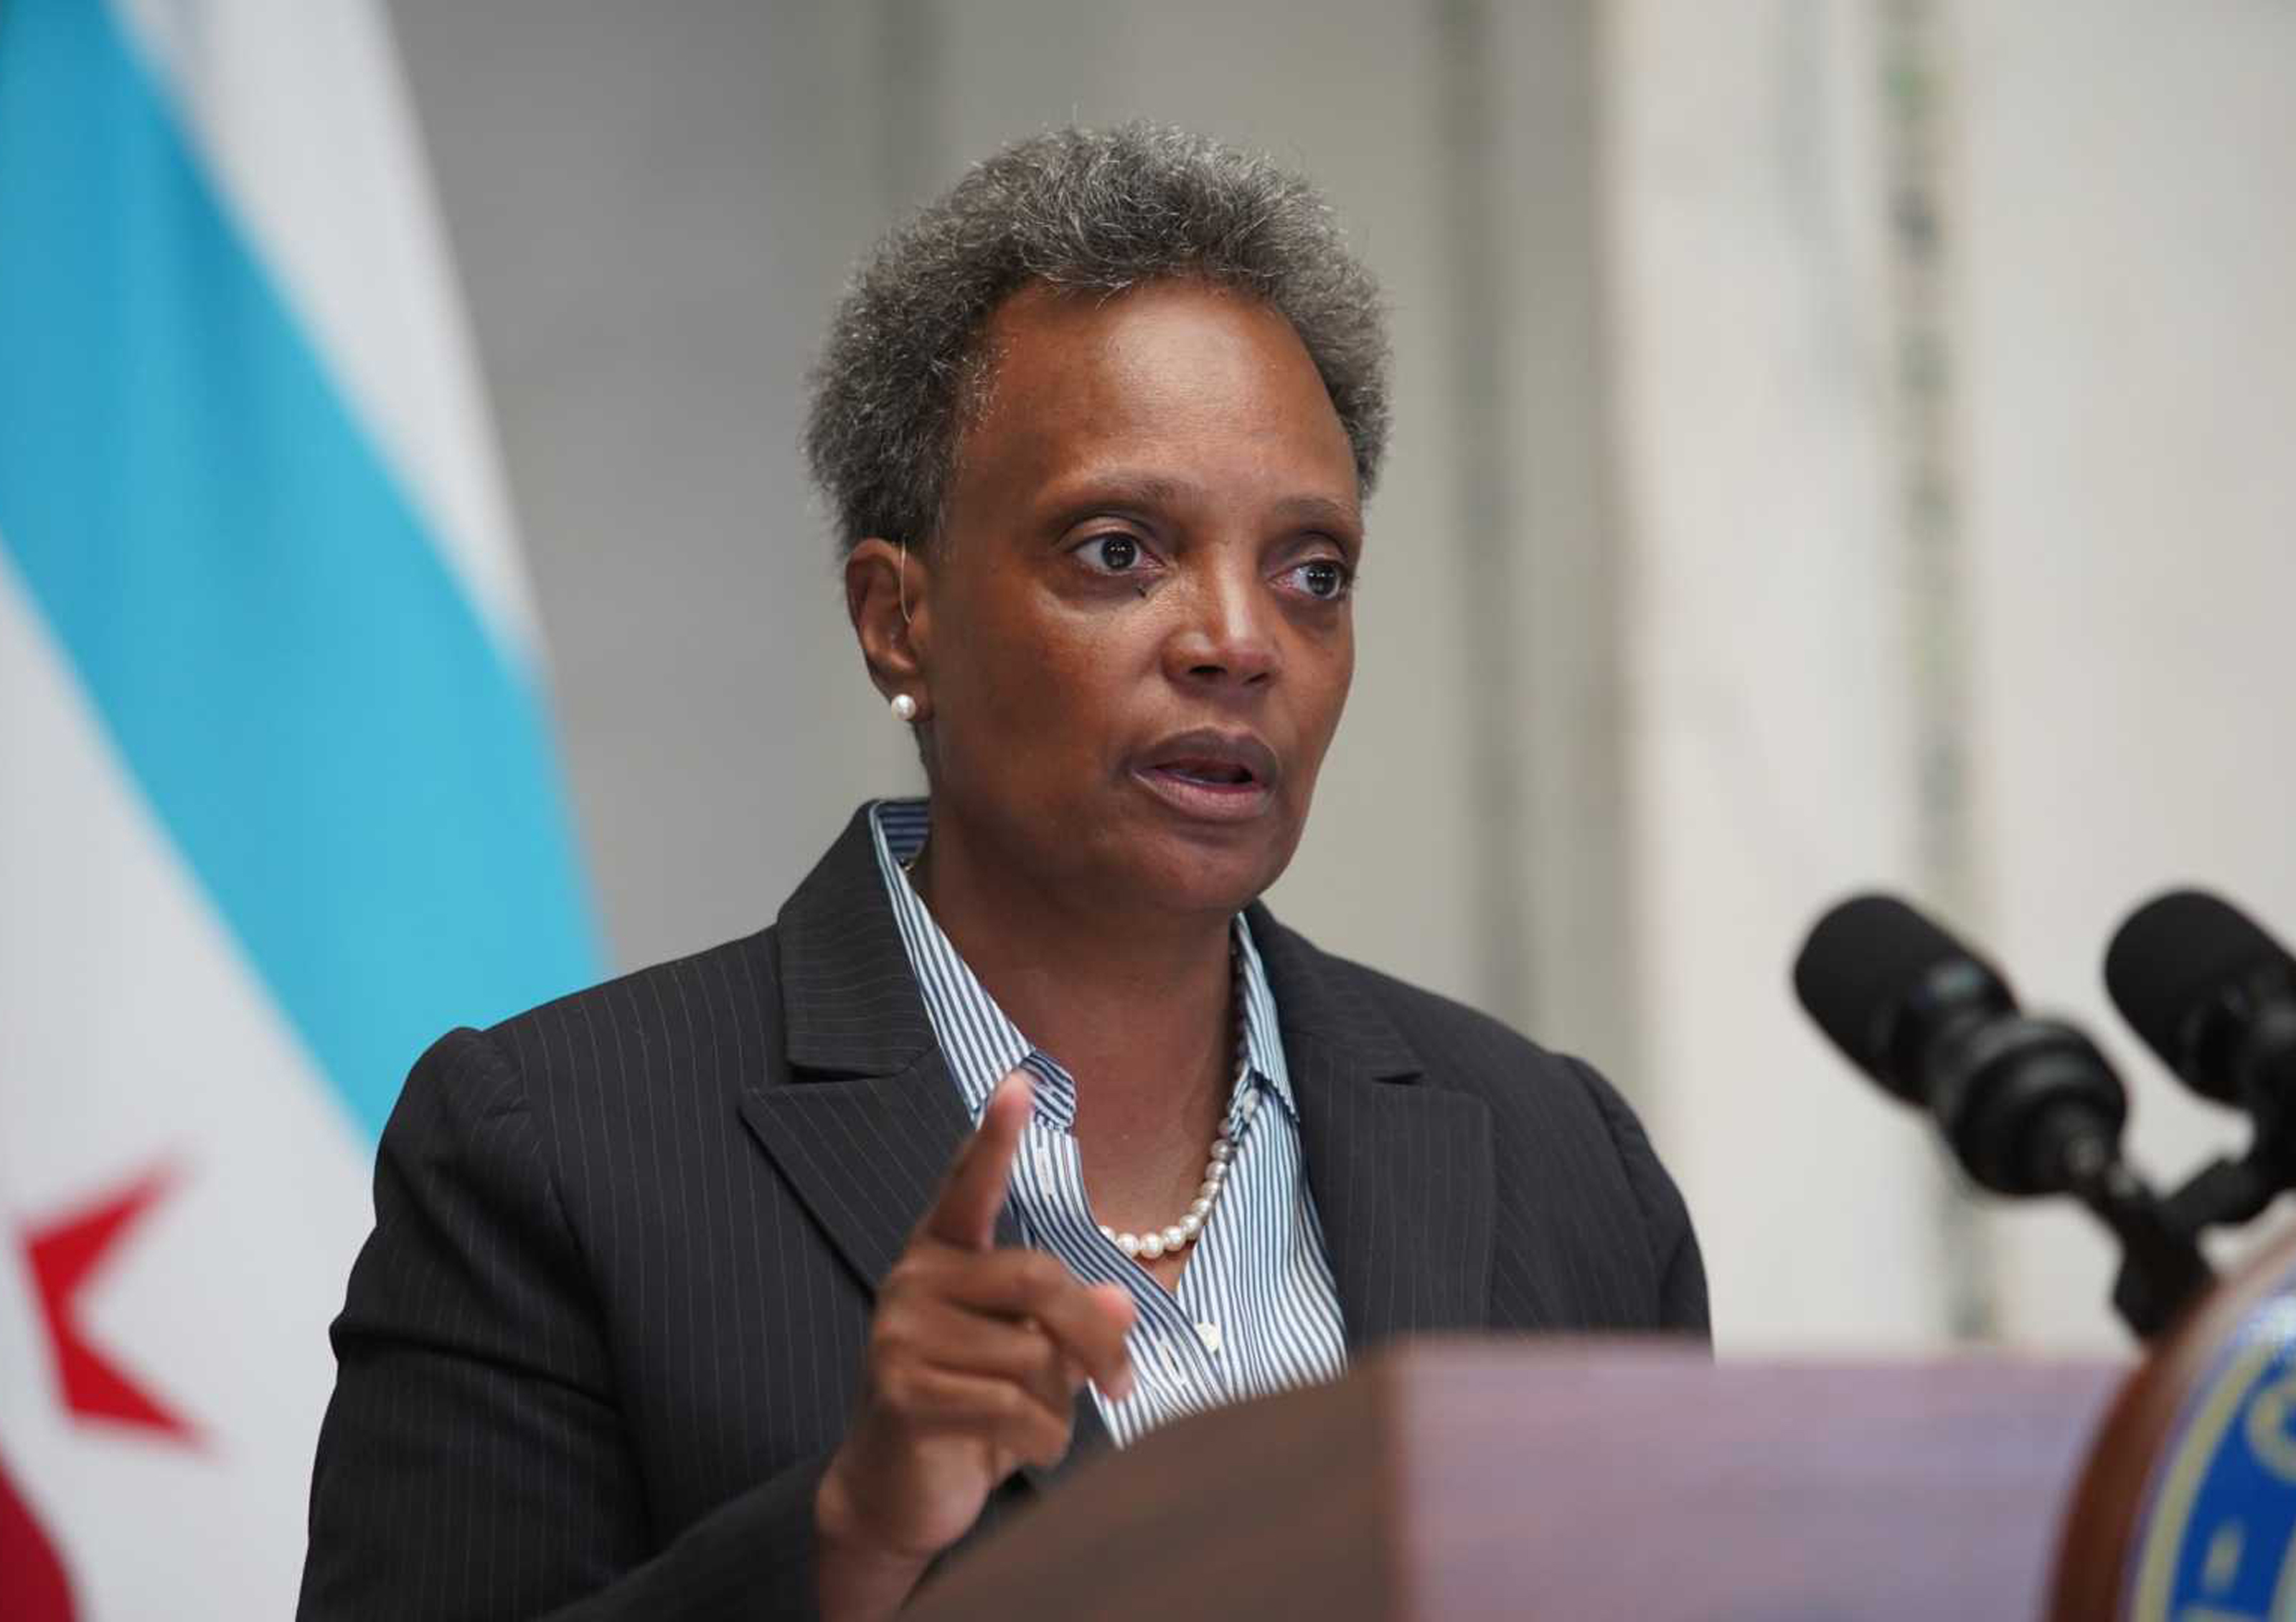 Mayor Lori Lightfoot speaking Monday, Aug. 31 at the Chicago Cultural Center.